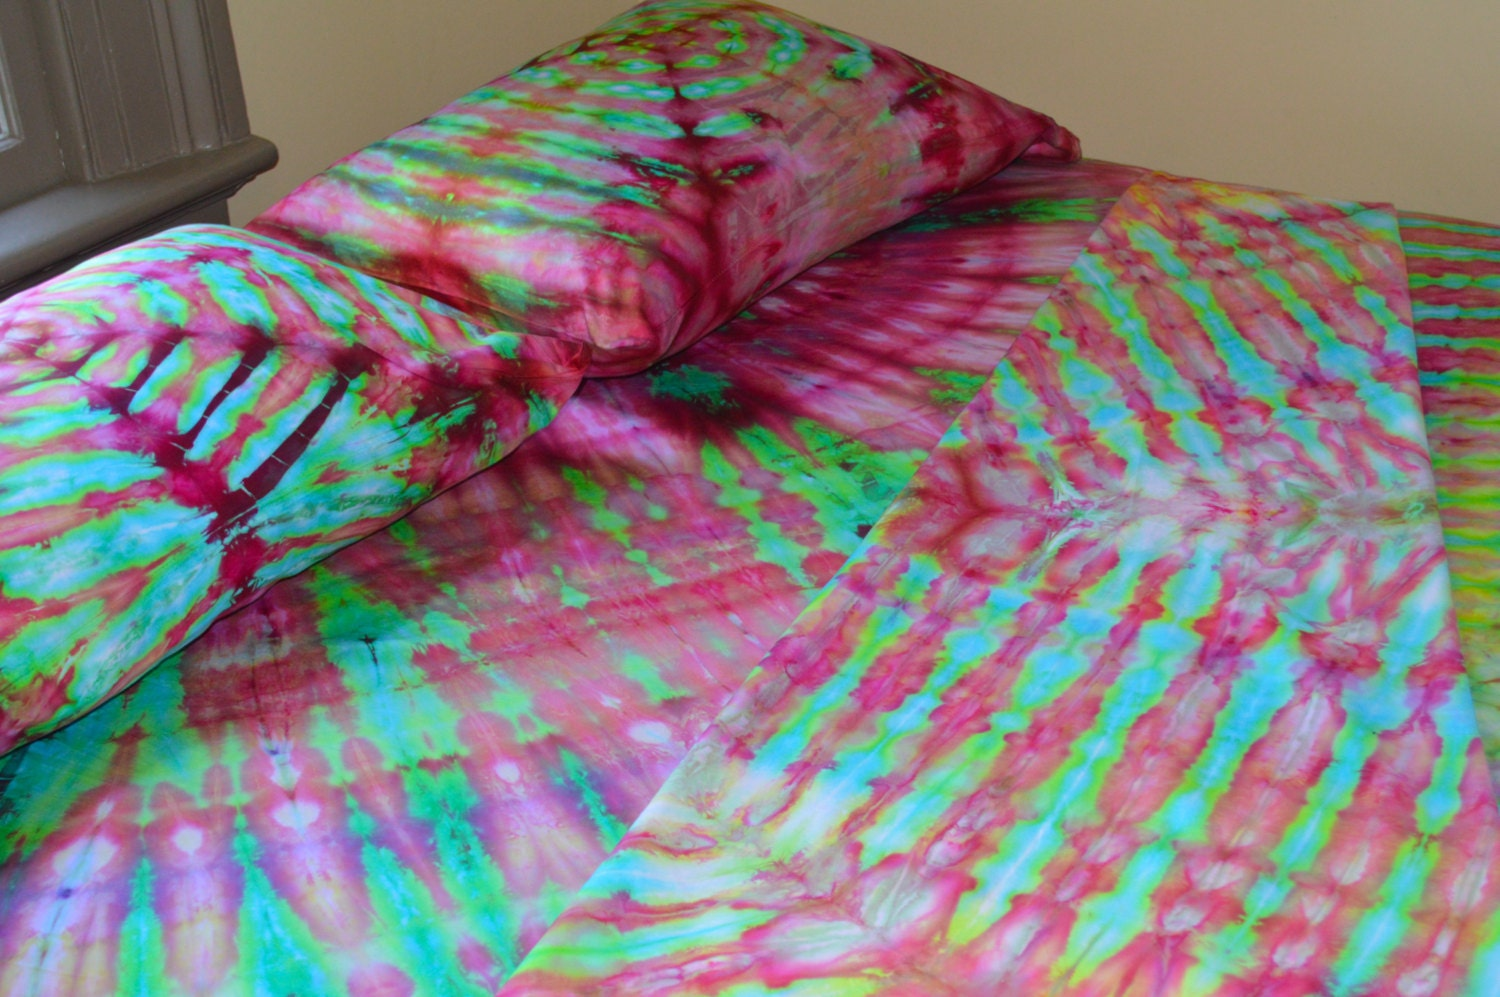 Hand Dyed Psychedelic Sheet Set Queen Size Tie Dyed